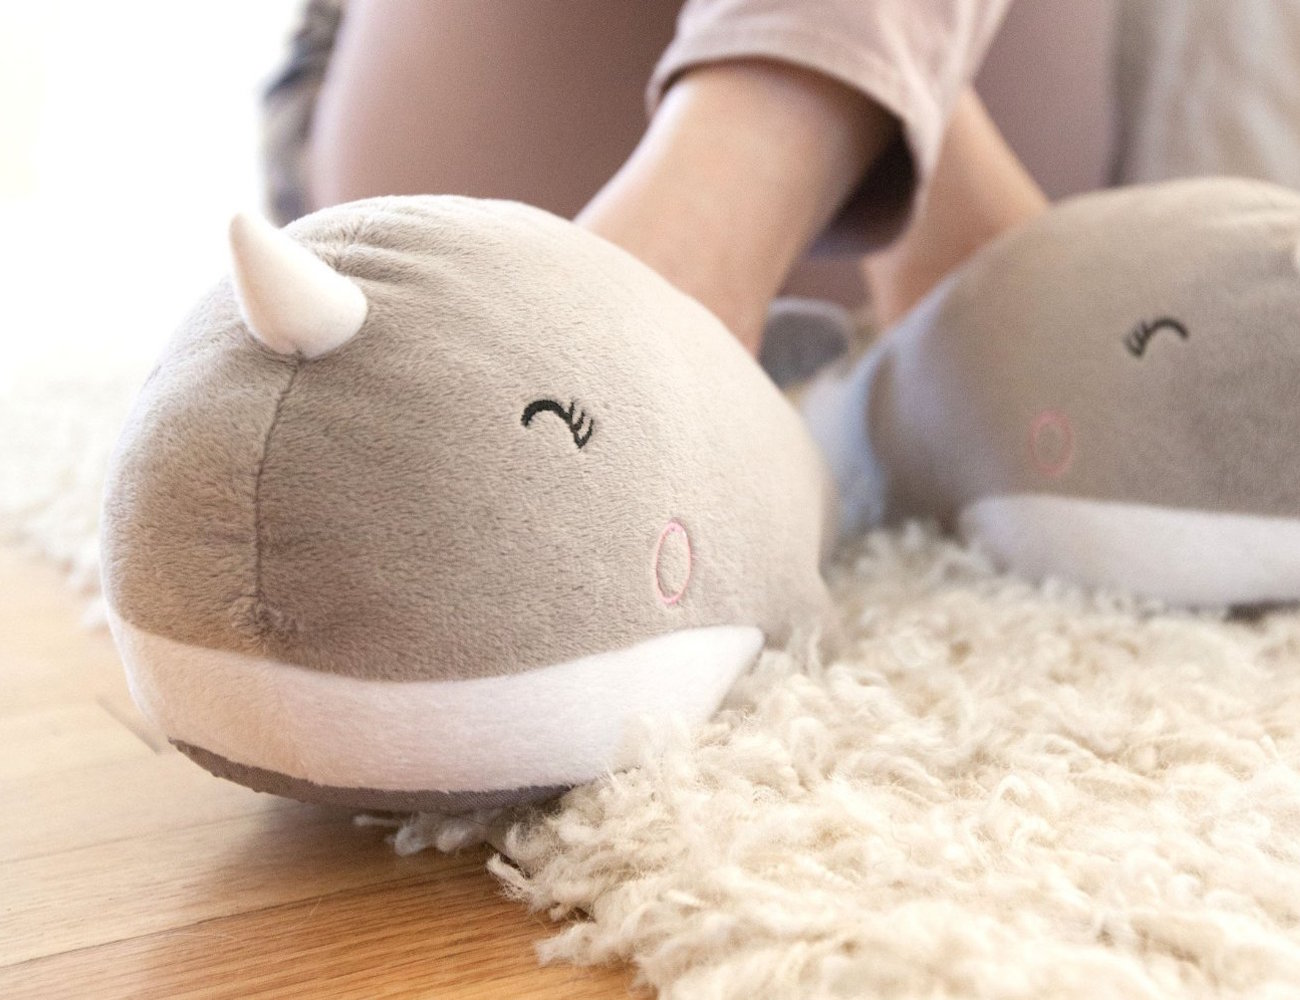 nari-narwhal-usb-heated-slippers-02